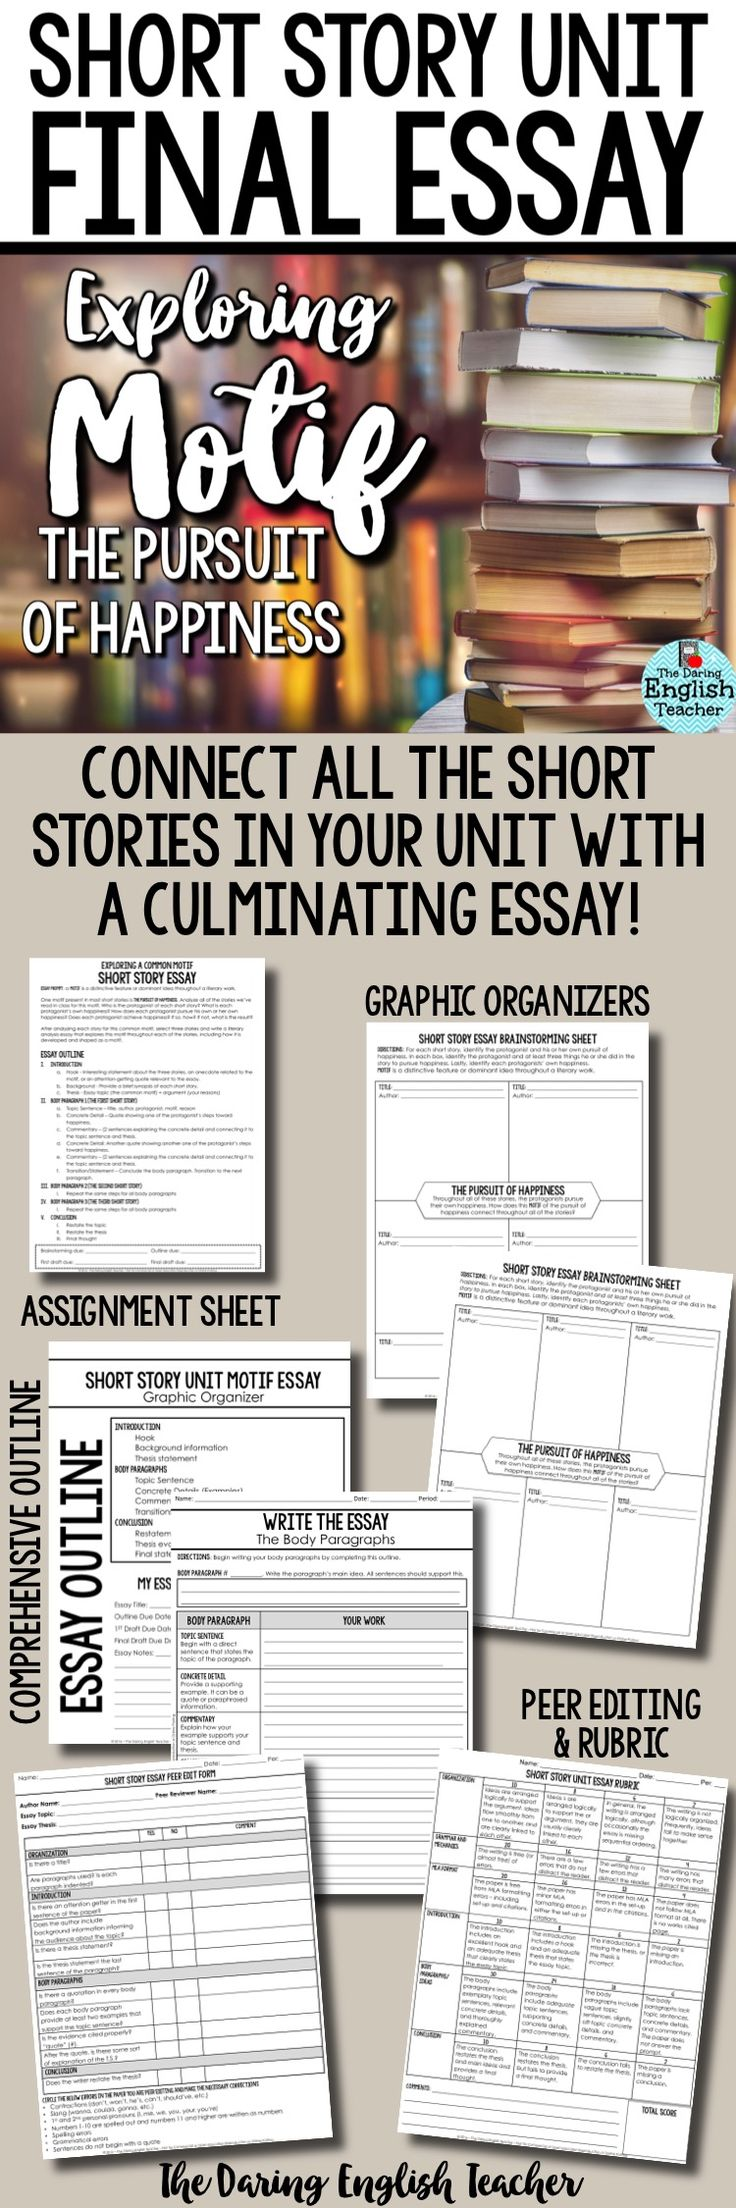 top ideas about short stories for high school students on short story unit final essay for middle school and high school english bring your short